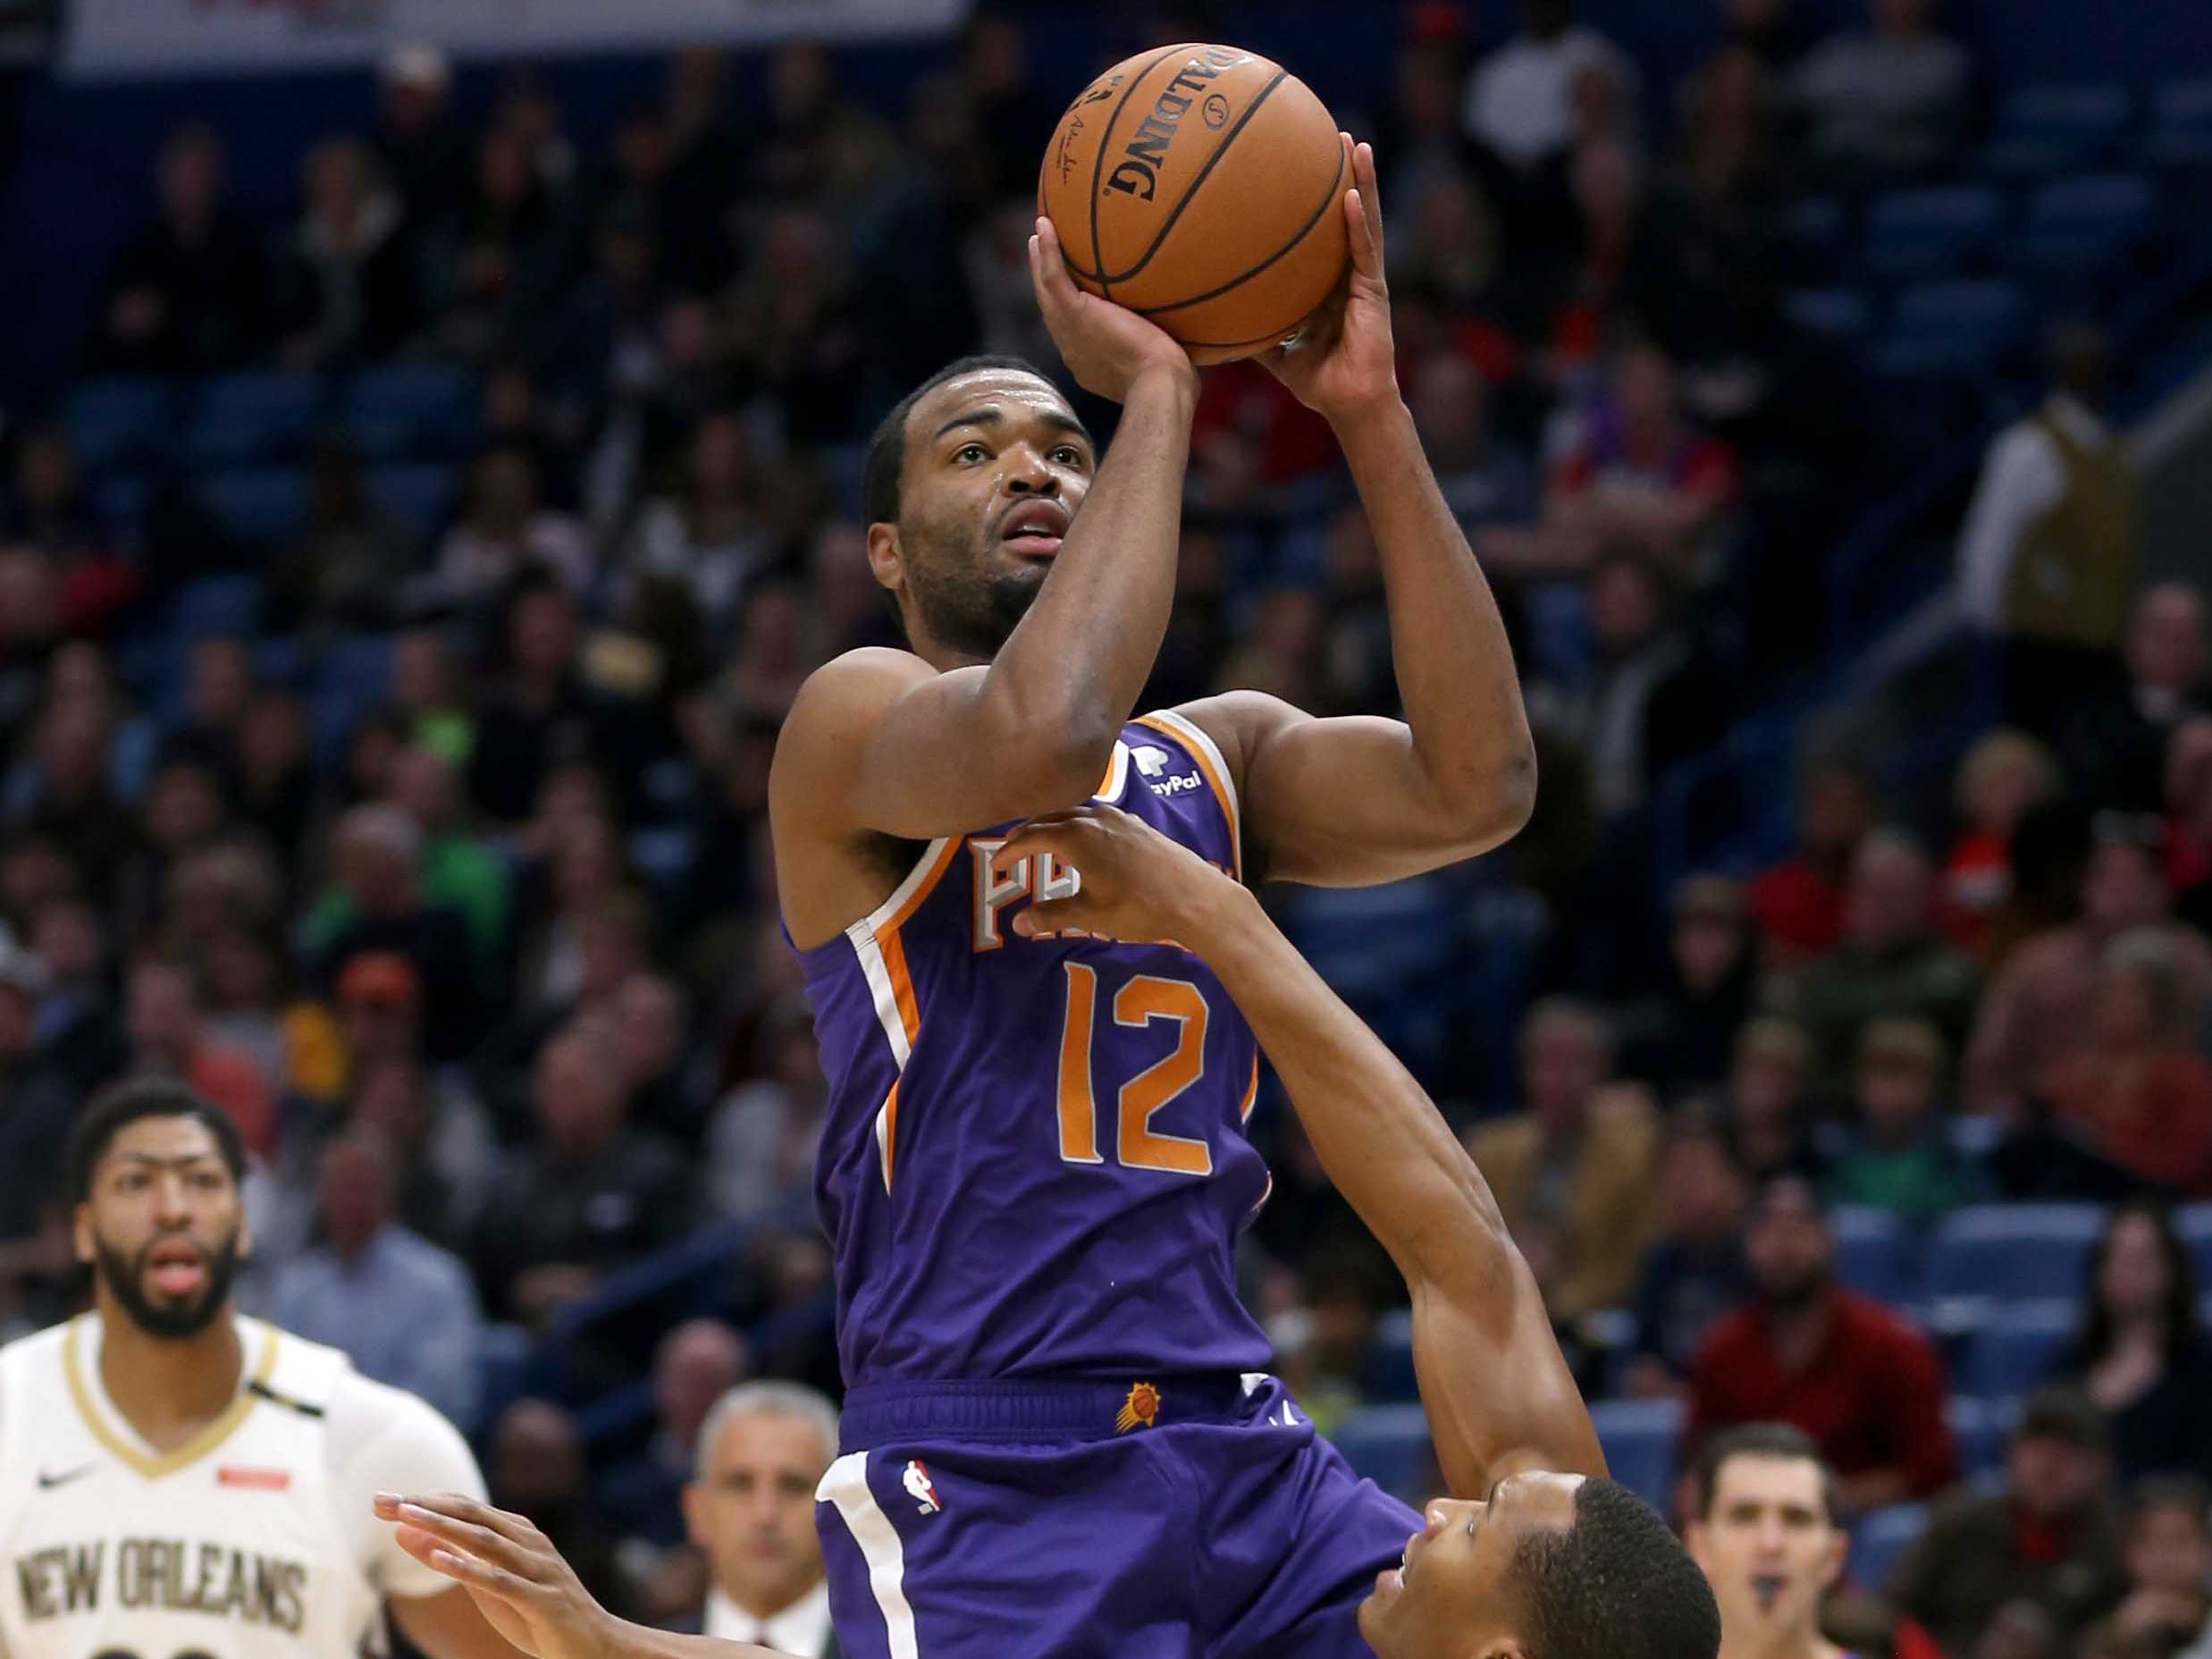 Nov 10, 2018; New Orleans, LA, USA; Phoenix Suns forward TJ Warren (12) shoots over New Orleans Pelicans forward Wesley Johnson (33) in the first quarter at the Smoothie King Center. Mandatory Credit: Chuck Cook-USA TODAY Sports